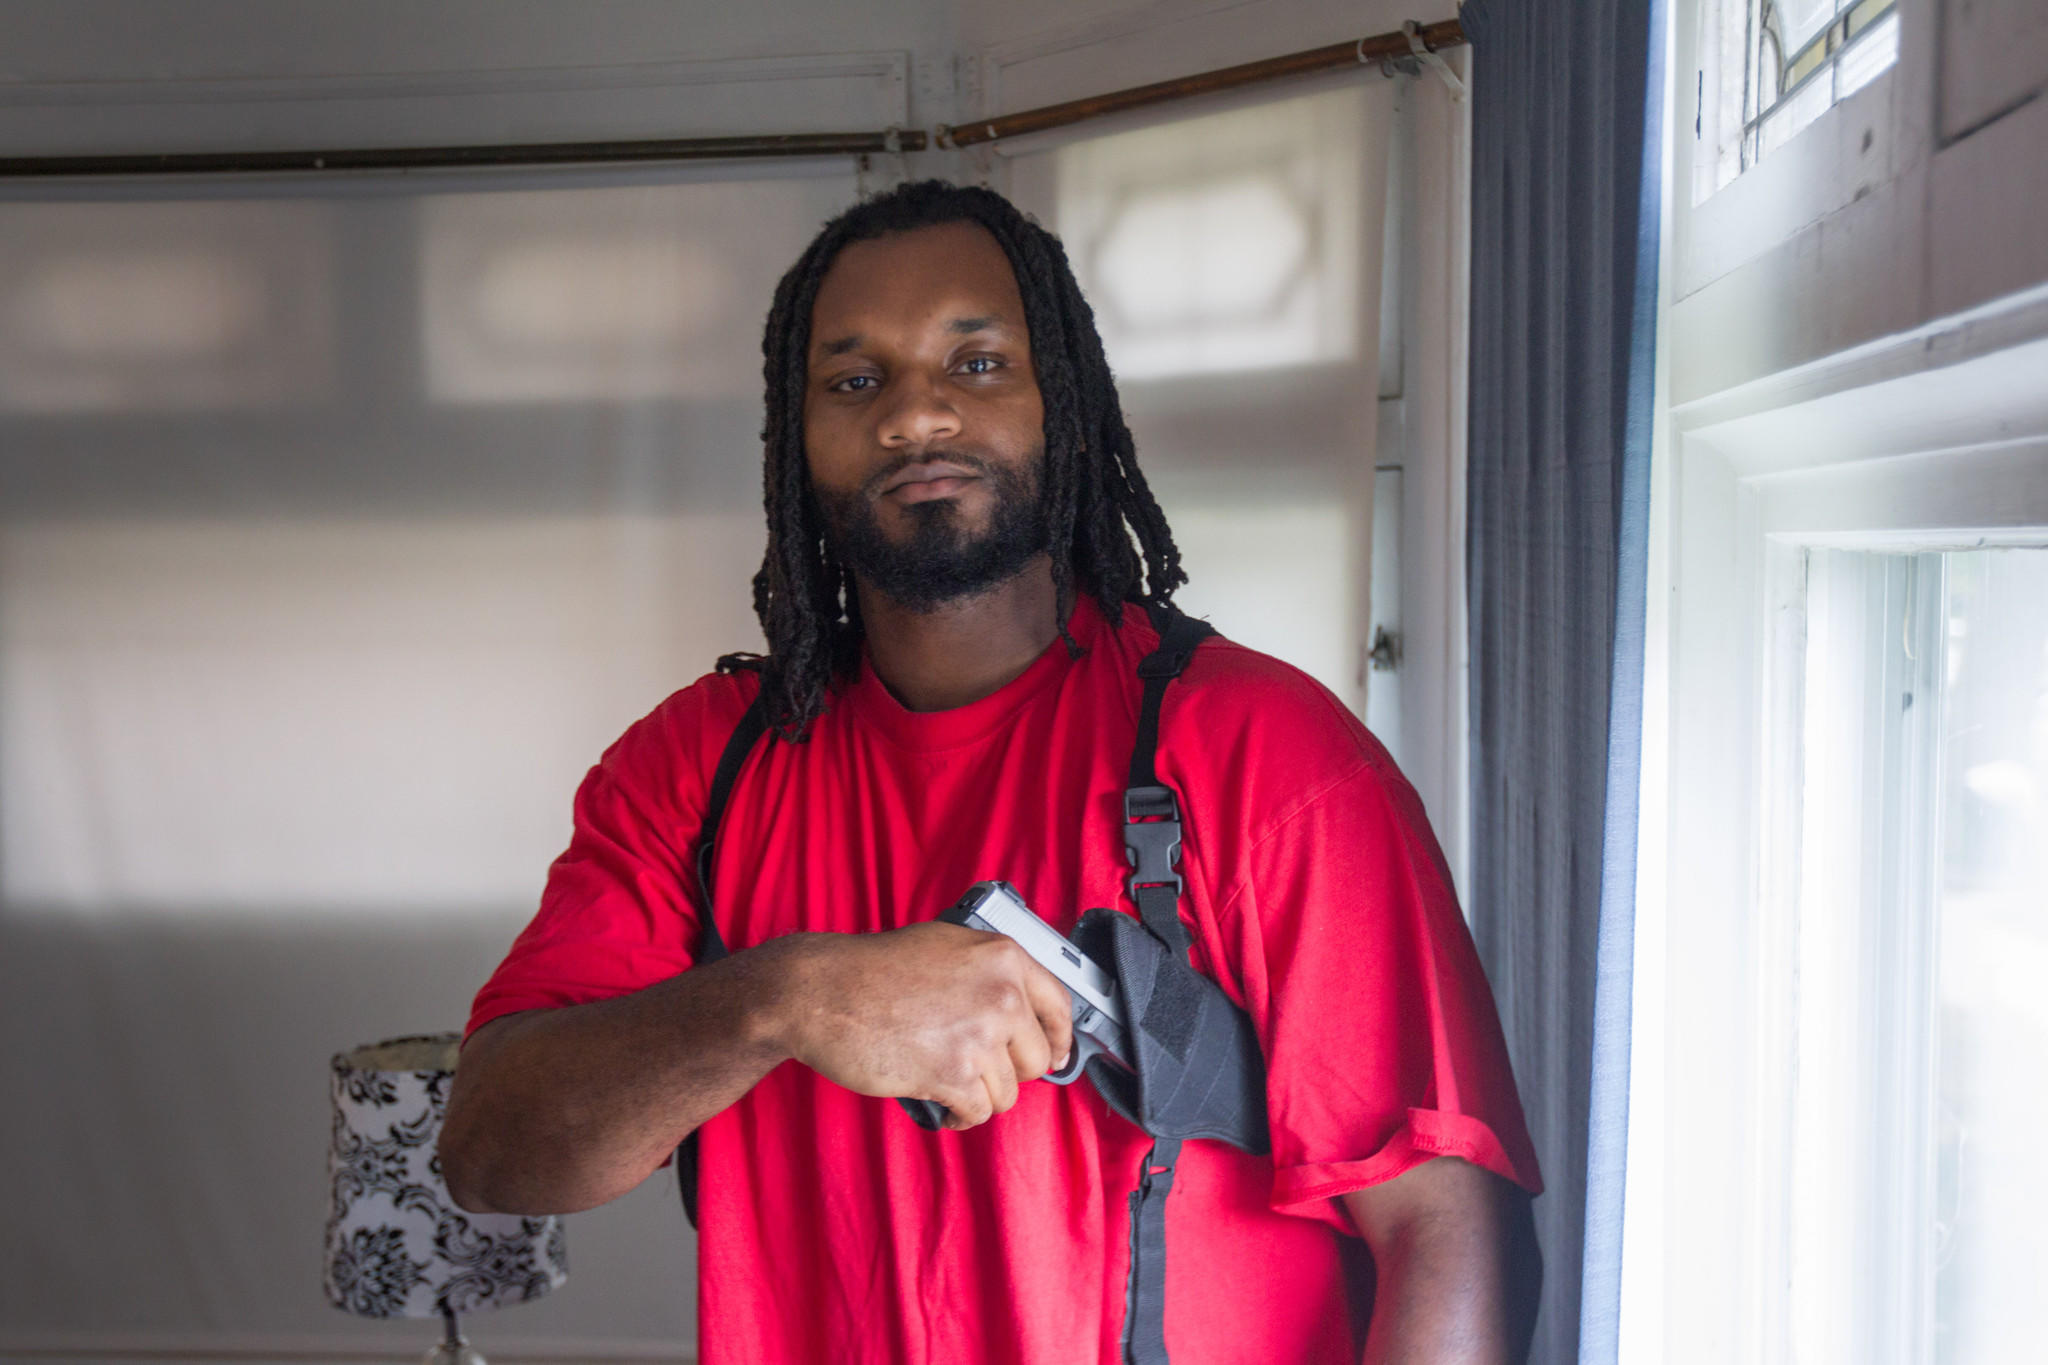 Michael Thomas with his gun at his home on the south side of Chicago, Tuesday, May 20, 2014. Michael Thomas has sued the Illinois State Police for denying his application for a concealed carry license without giving a reason why.